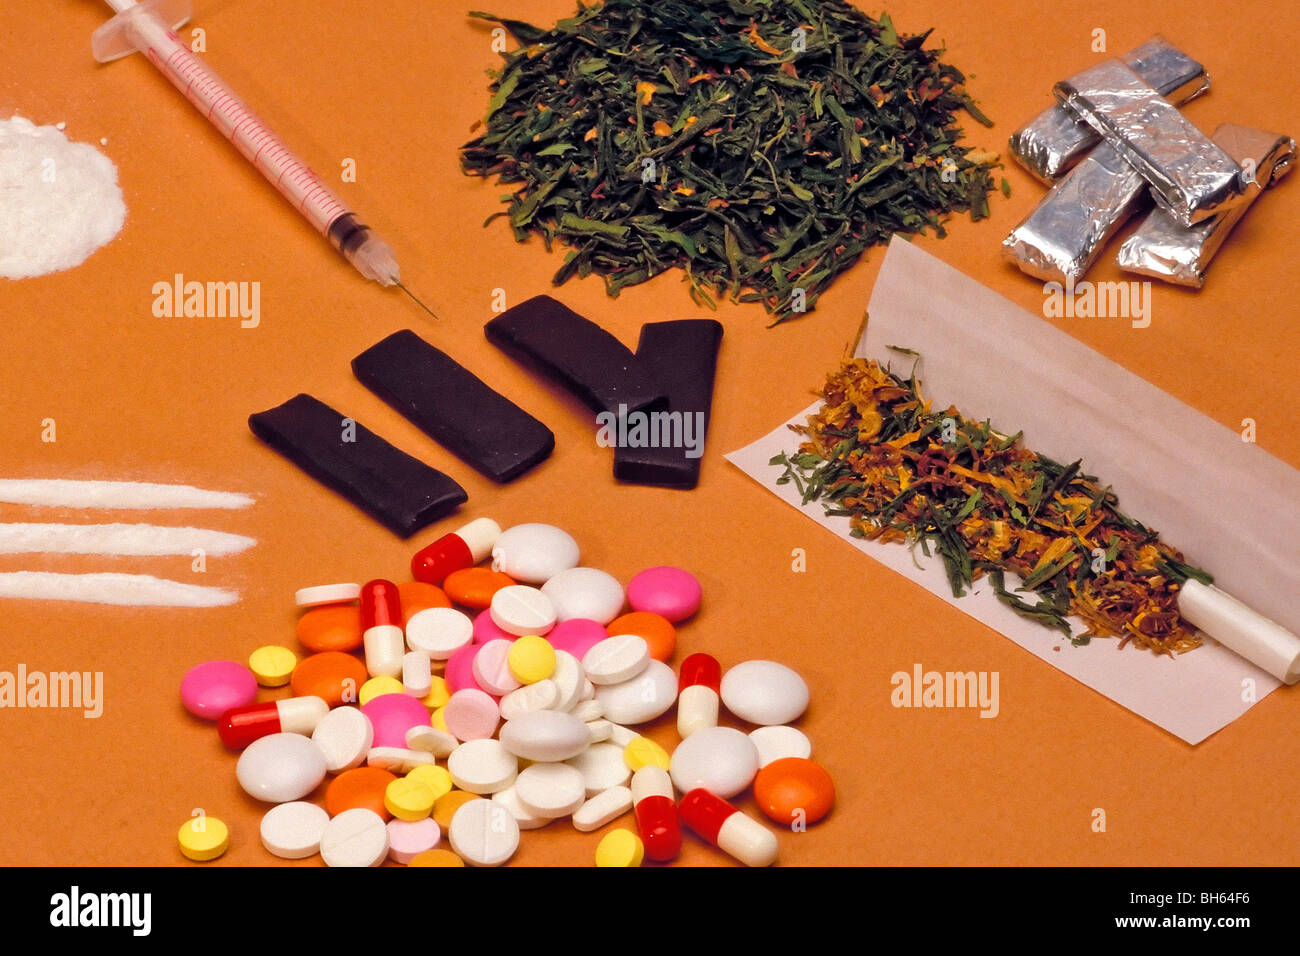 """soft drugs This essay is to examine both the pros and cons of legalizing """"soft drugs"""" hard and soft drugs are terms to distinguish between psychoactive drugs that are addictive and perceived as especially damaging and drugs that are believed to be non-addictive (or minimally addictive) and with less dangers associated with its use."""